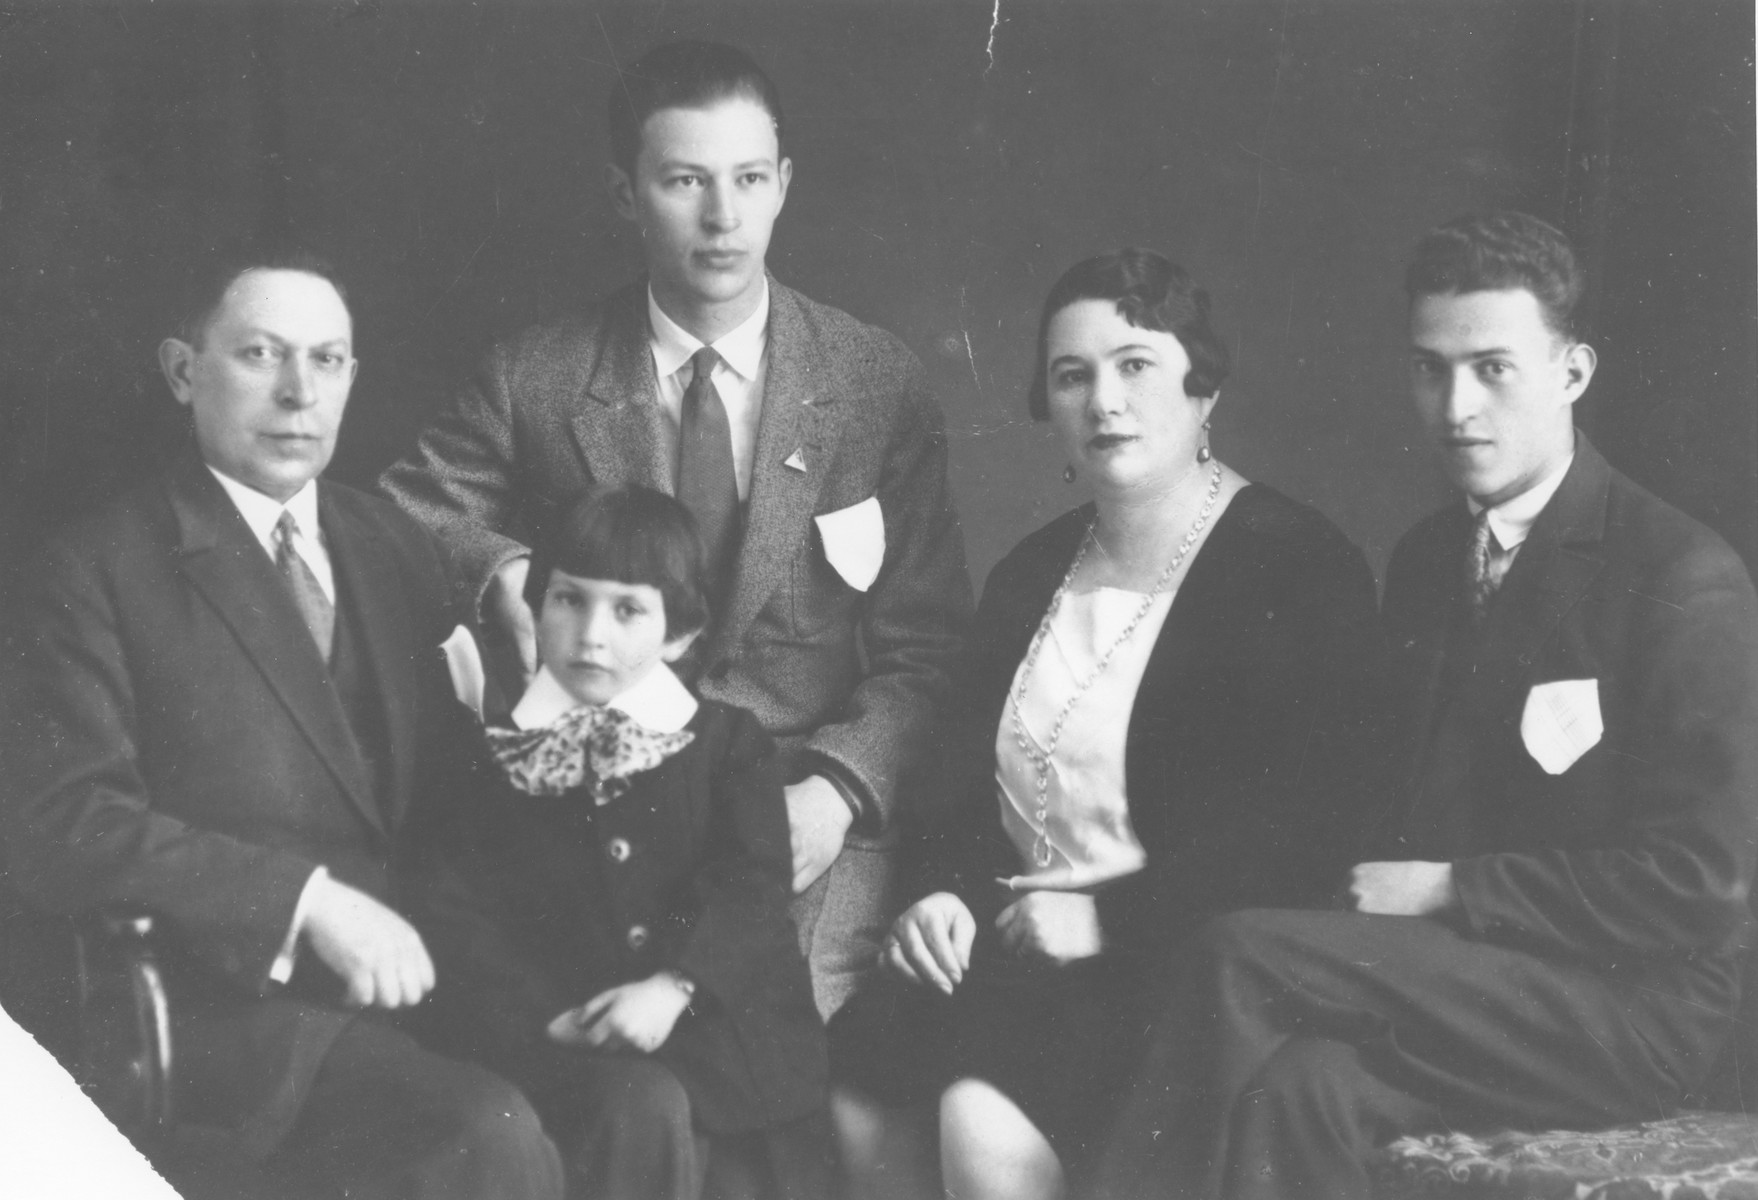 Portrait of the Genchik family in Riga, Latvia.  Pictured are Gdaly Hirsch and Rocha Zelda Genchik and their three children, Israel, Abram and Mordkha.